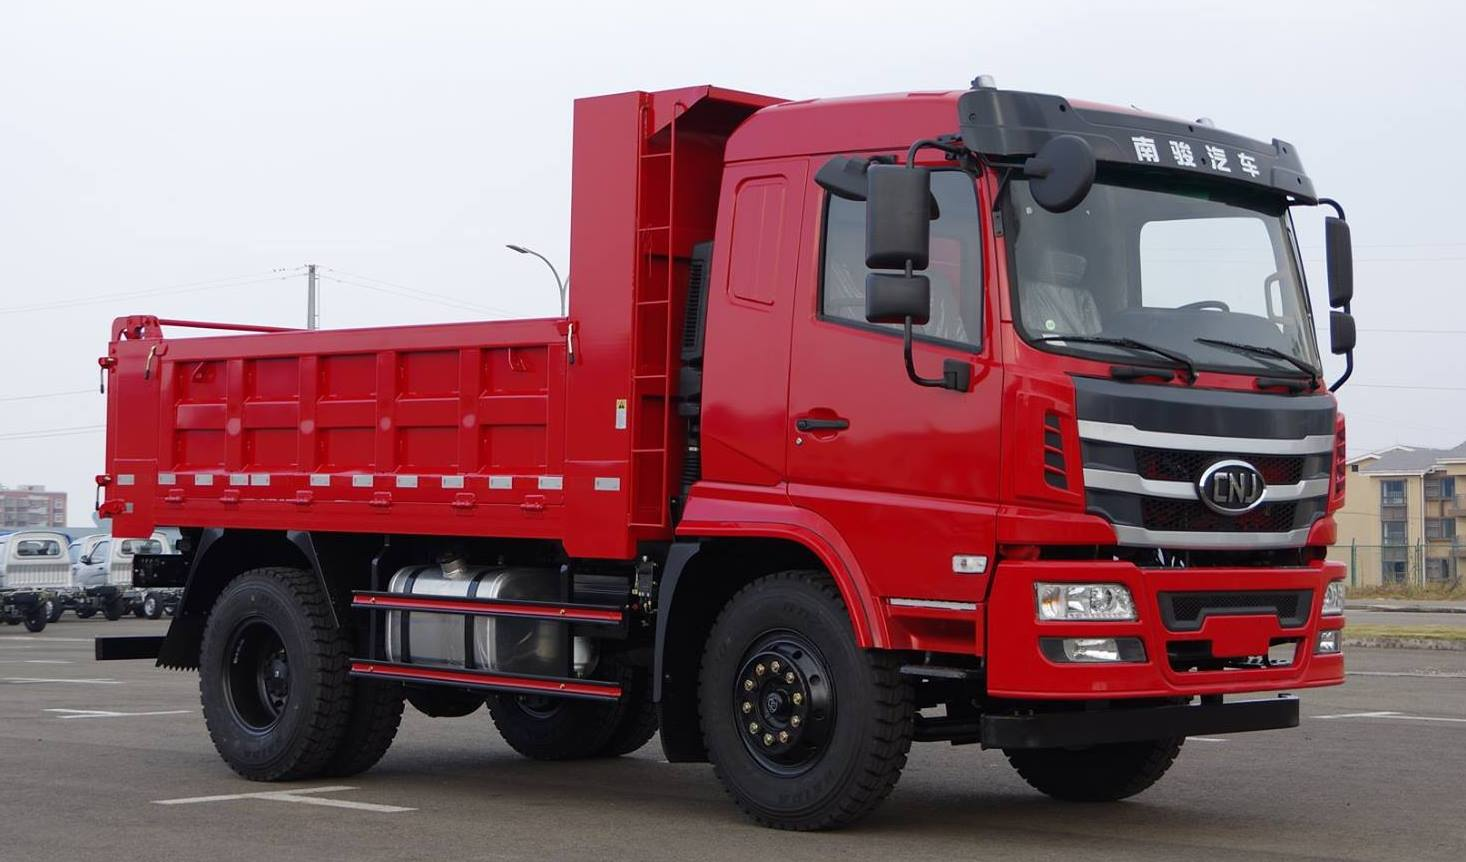 CNJ-Heavy-Truck--K50-Series--from-15-tons-to-25-tons-2